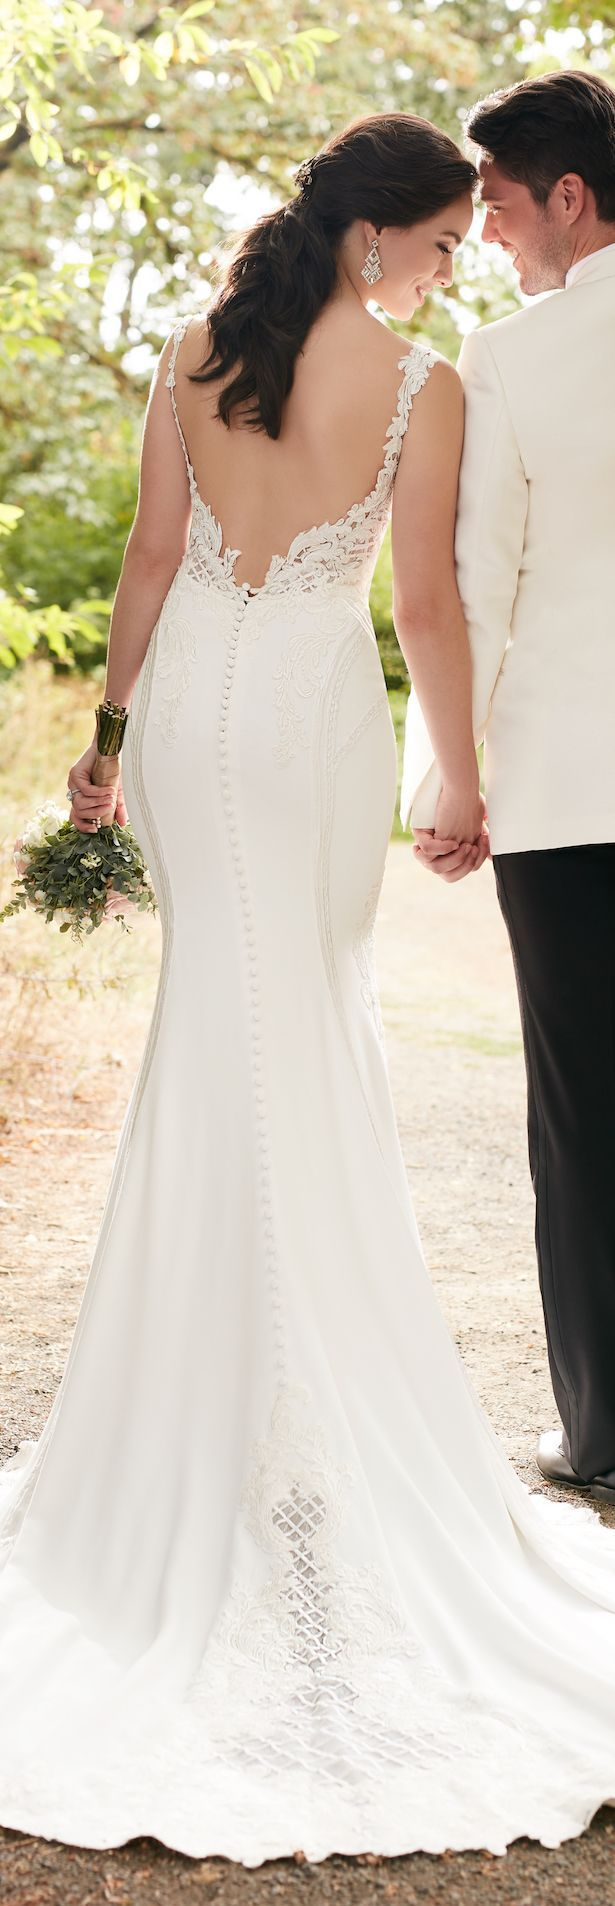 Wedding dresses by martina liana spring bridal collection